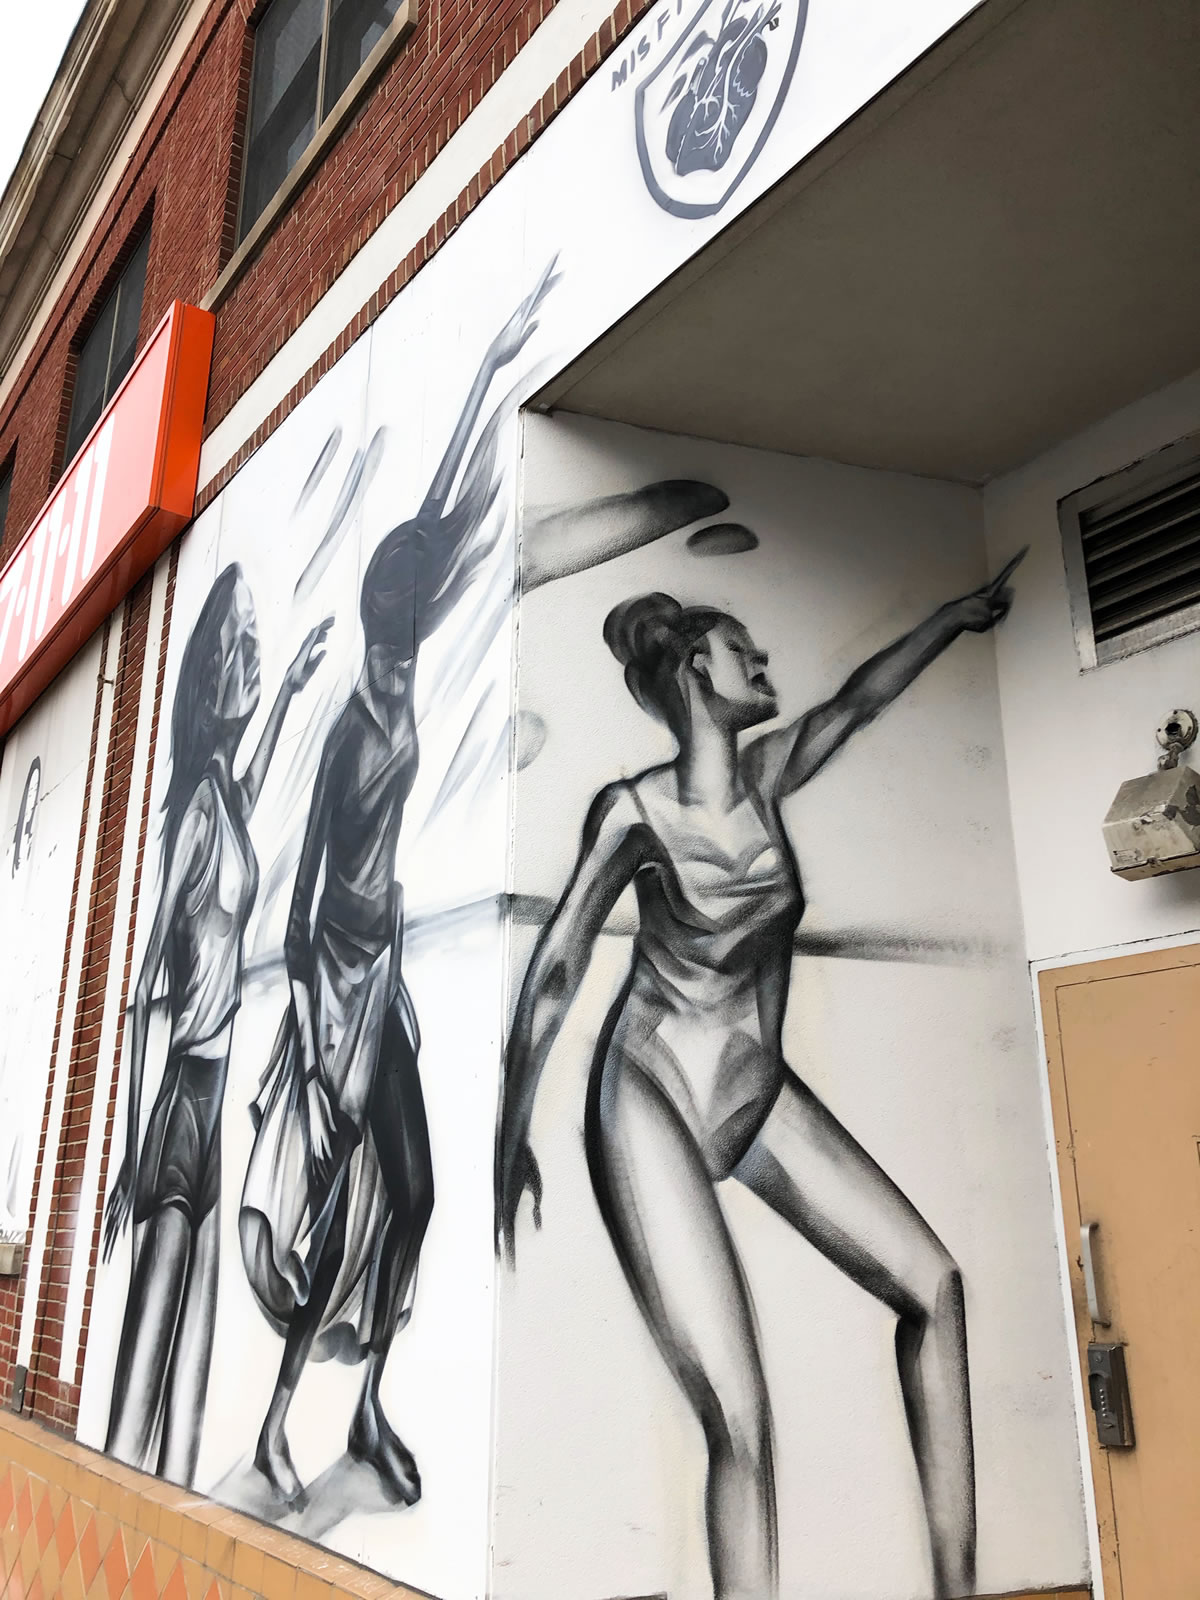 This newish mural by Elicser Elliott is outside of a pilates studio. He does a lot of storefronts lately.